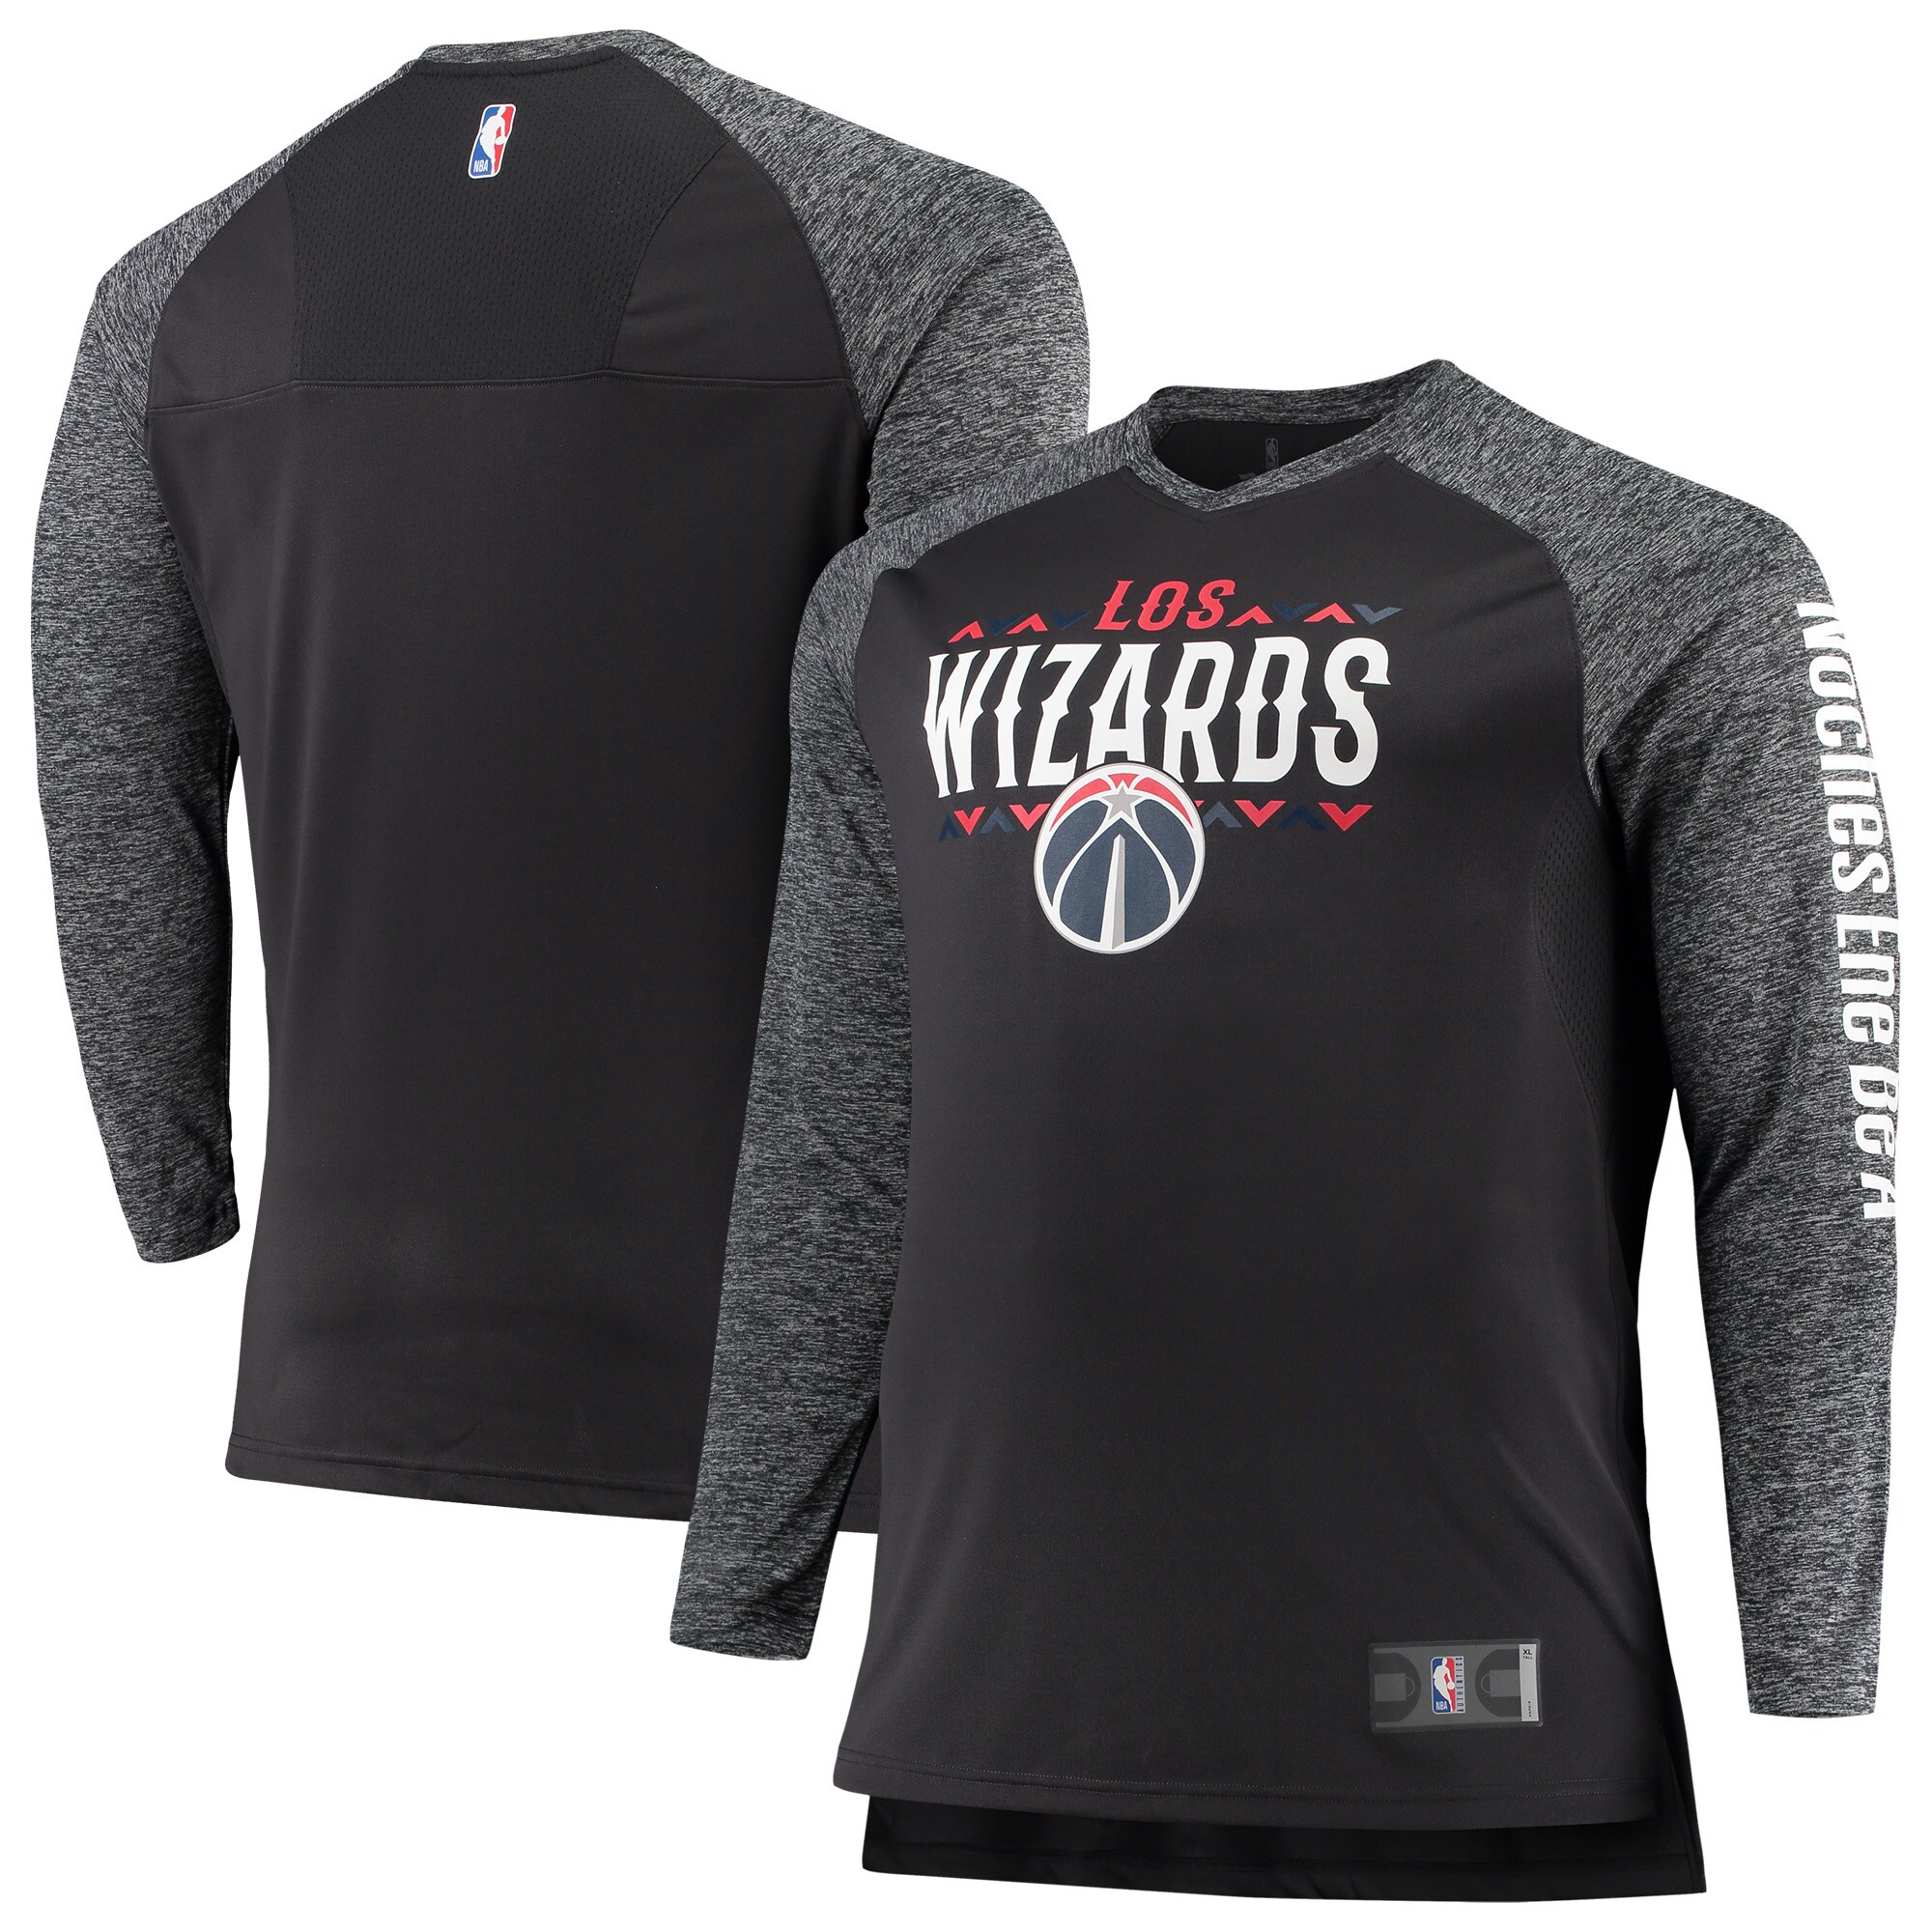 Washington Wizards Fanatics Branded Noches Shooting Long Sleeve Raglan V-Neck T-Shirt - Gray